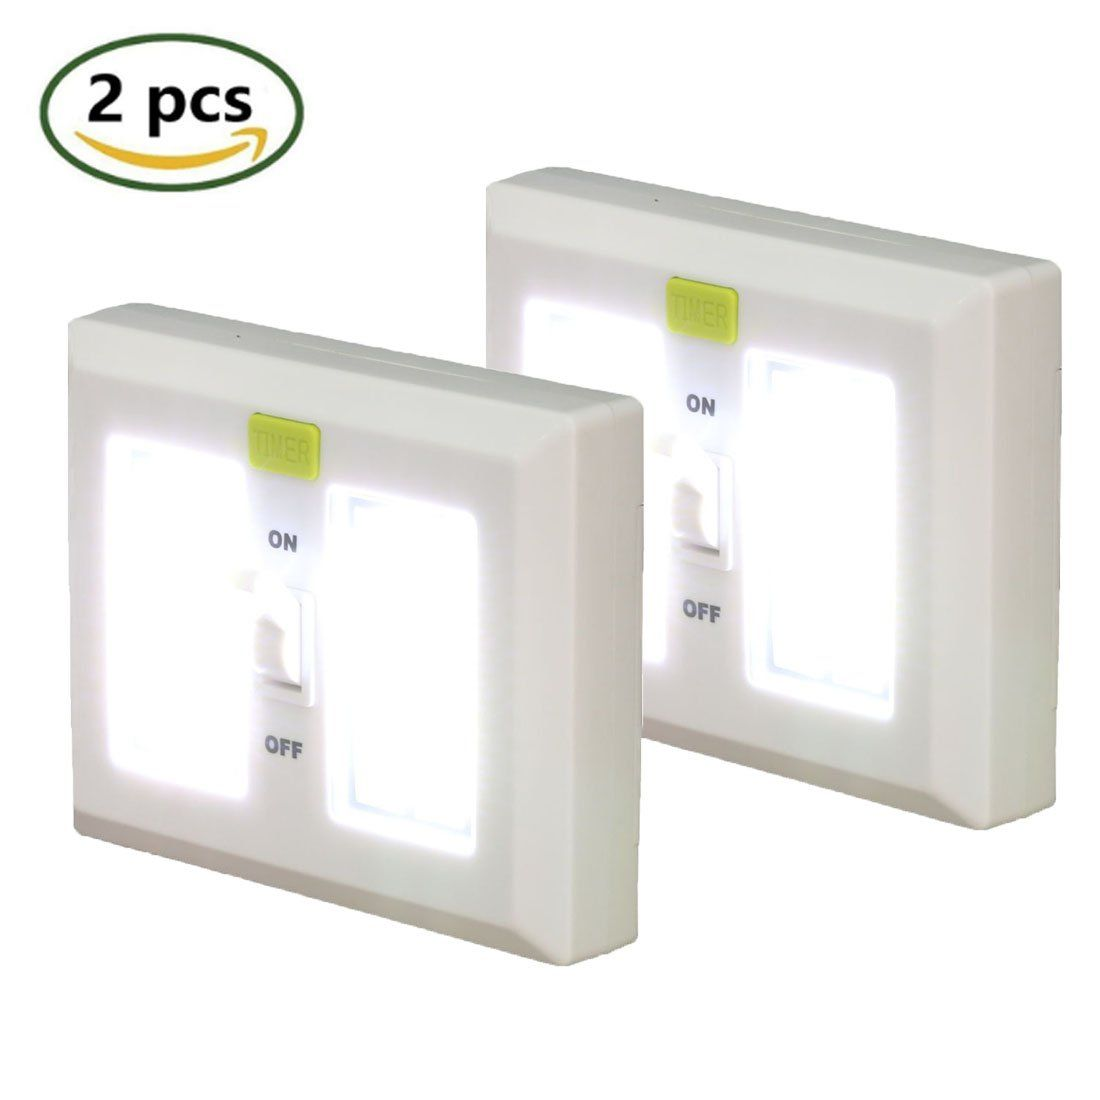 Super Bright Led Light Switch With 1 Minute Timer Universal Led Night Lights Cordless For Closets Cabinet G Led Light Switch Bright Led Lights Led Night Light